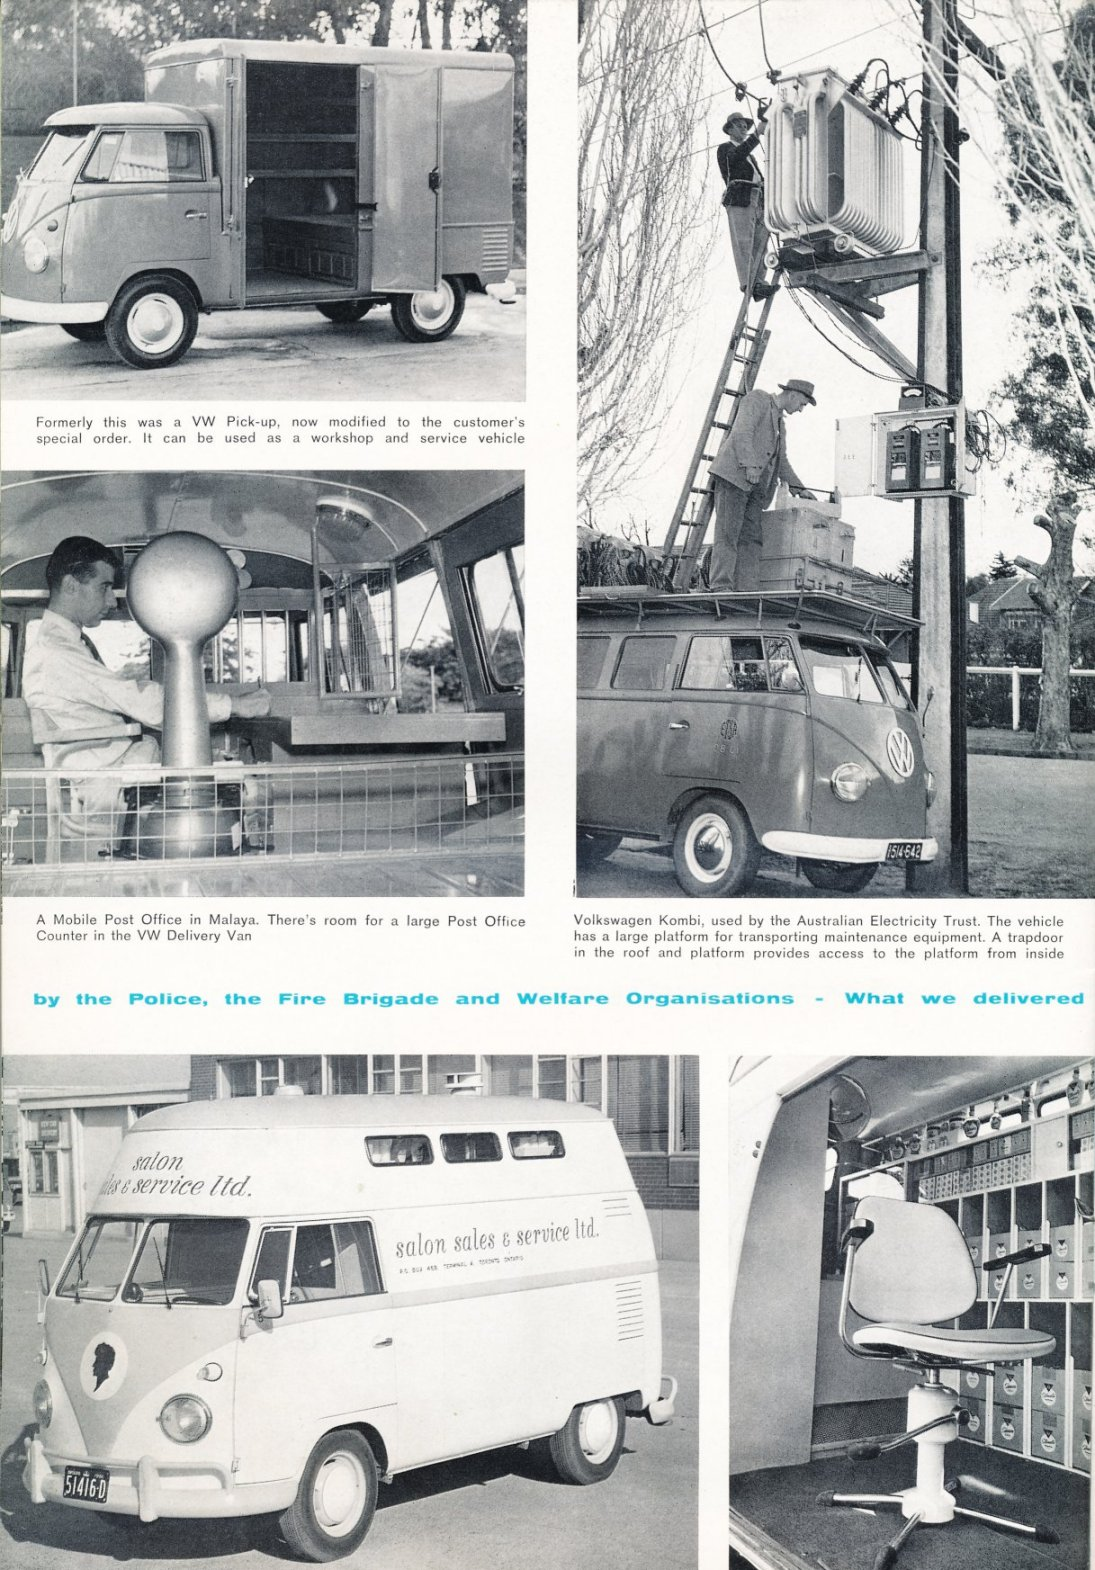 TheSamba.com :: VW Archives - Bus Special Models article from 1963 ...